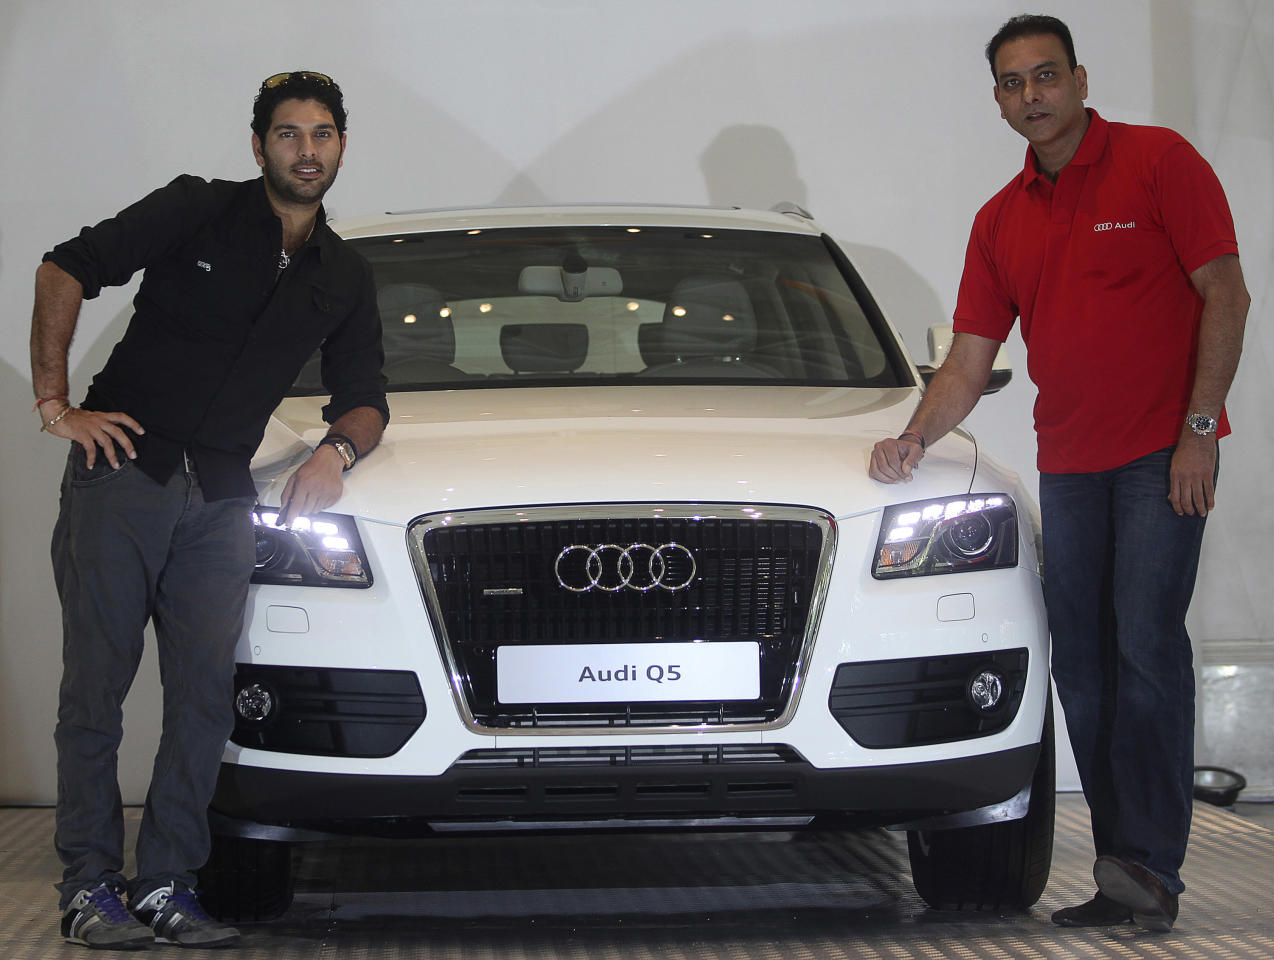 Indian cricketer Yuvraj Singh, left, poses with an Audi Q5, along with former Indian cricketer Ravi Shastri, in Mumbai, India, Thursday, April 14, 2011. Audi, the German luxury car manufacturer, presented Singh with the Audi Q5 for his performance in the ICC World Cup 2011.